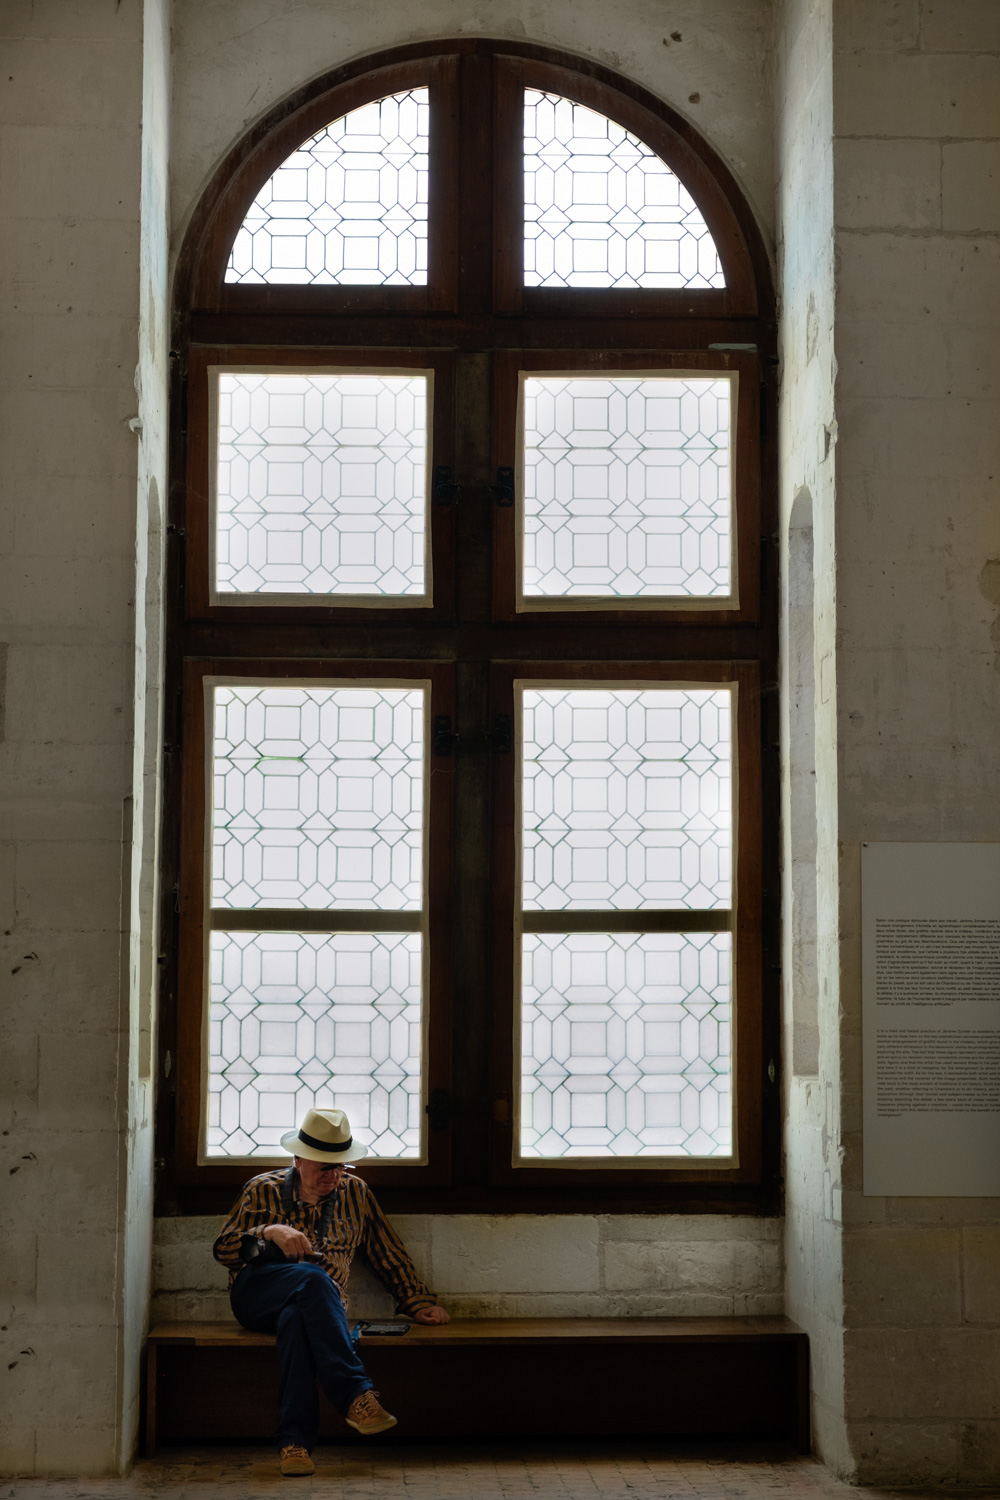 A man waits inside Chambord